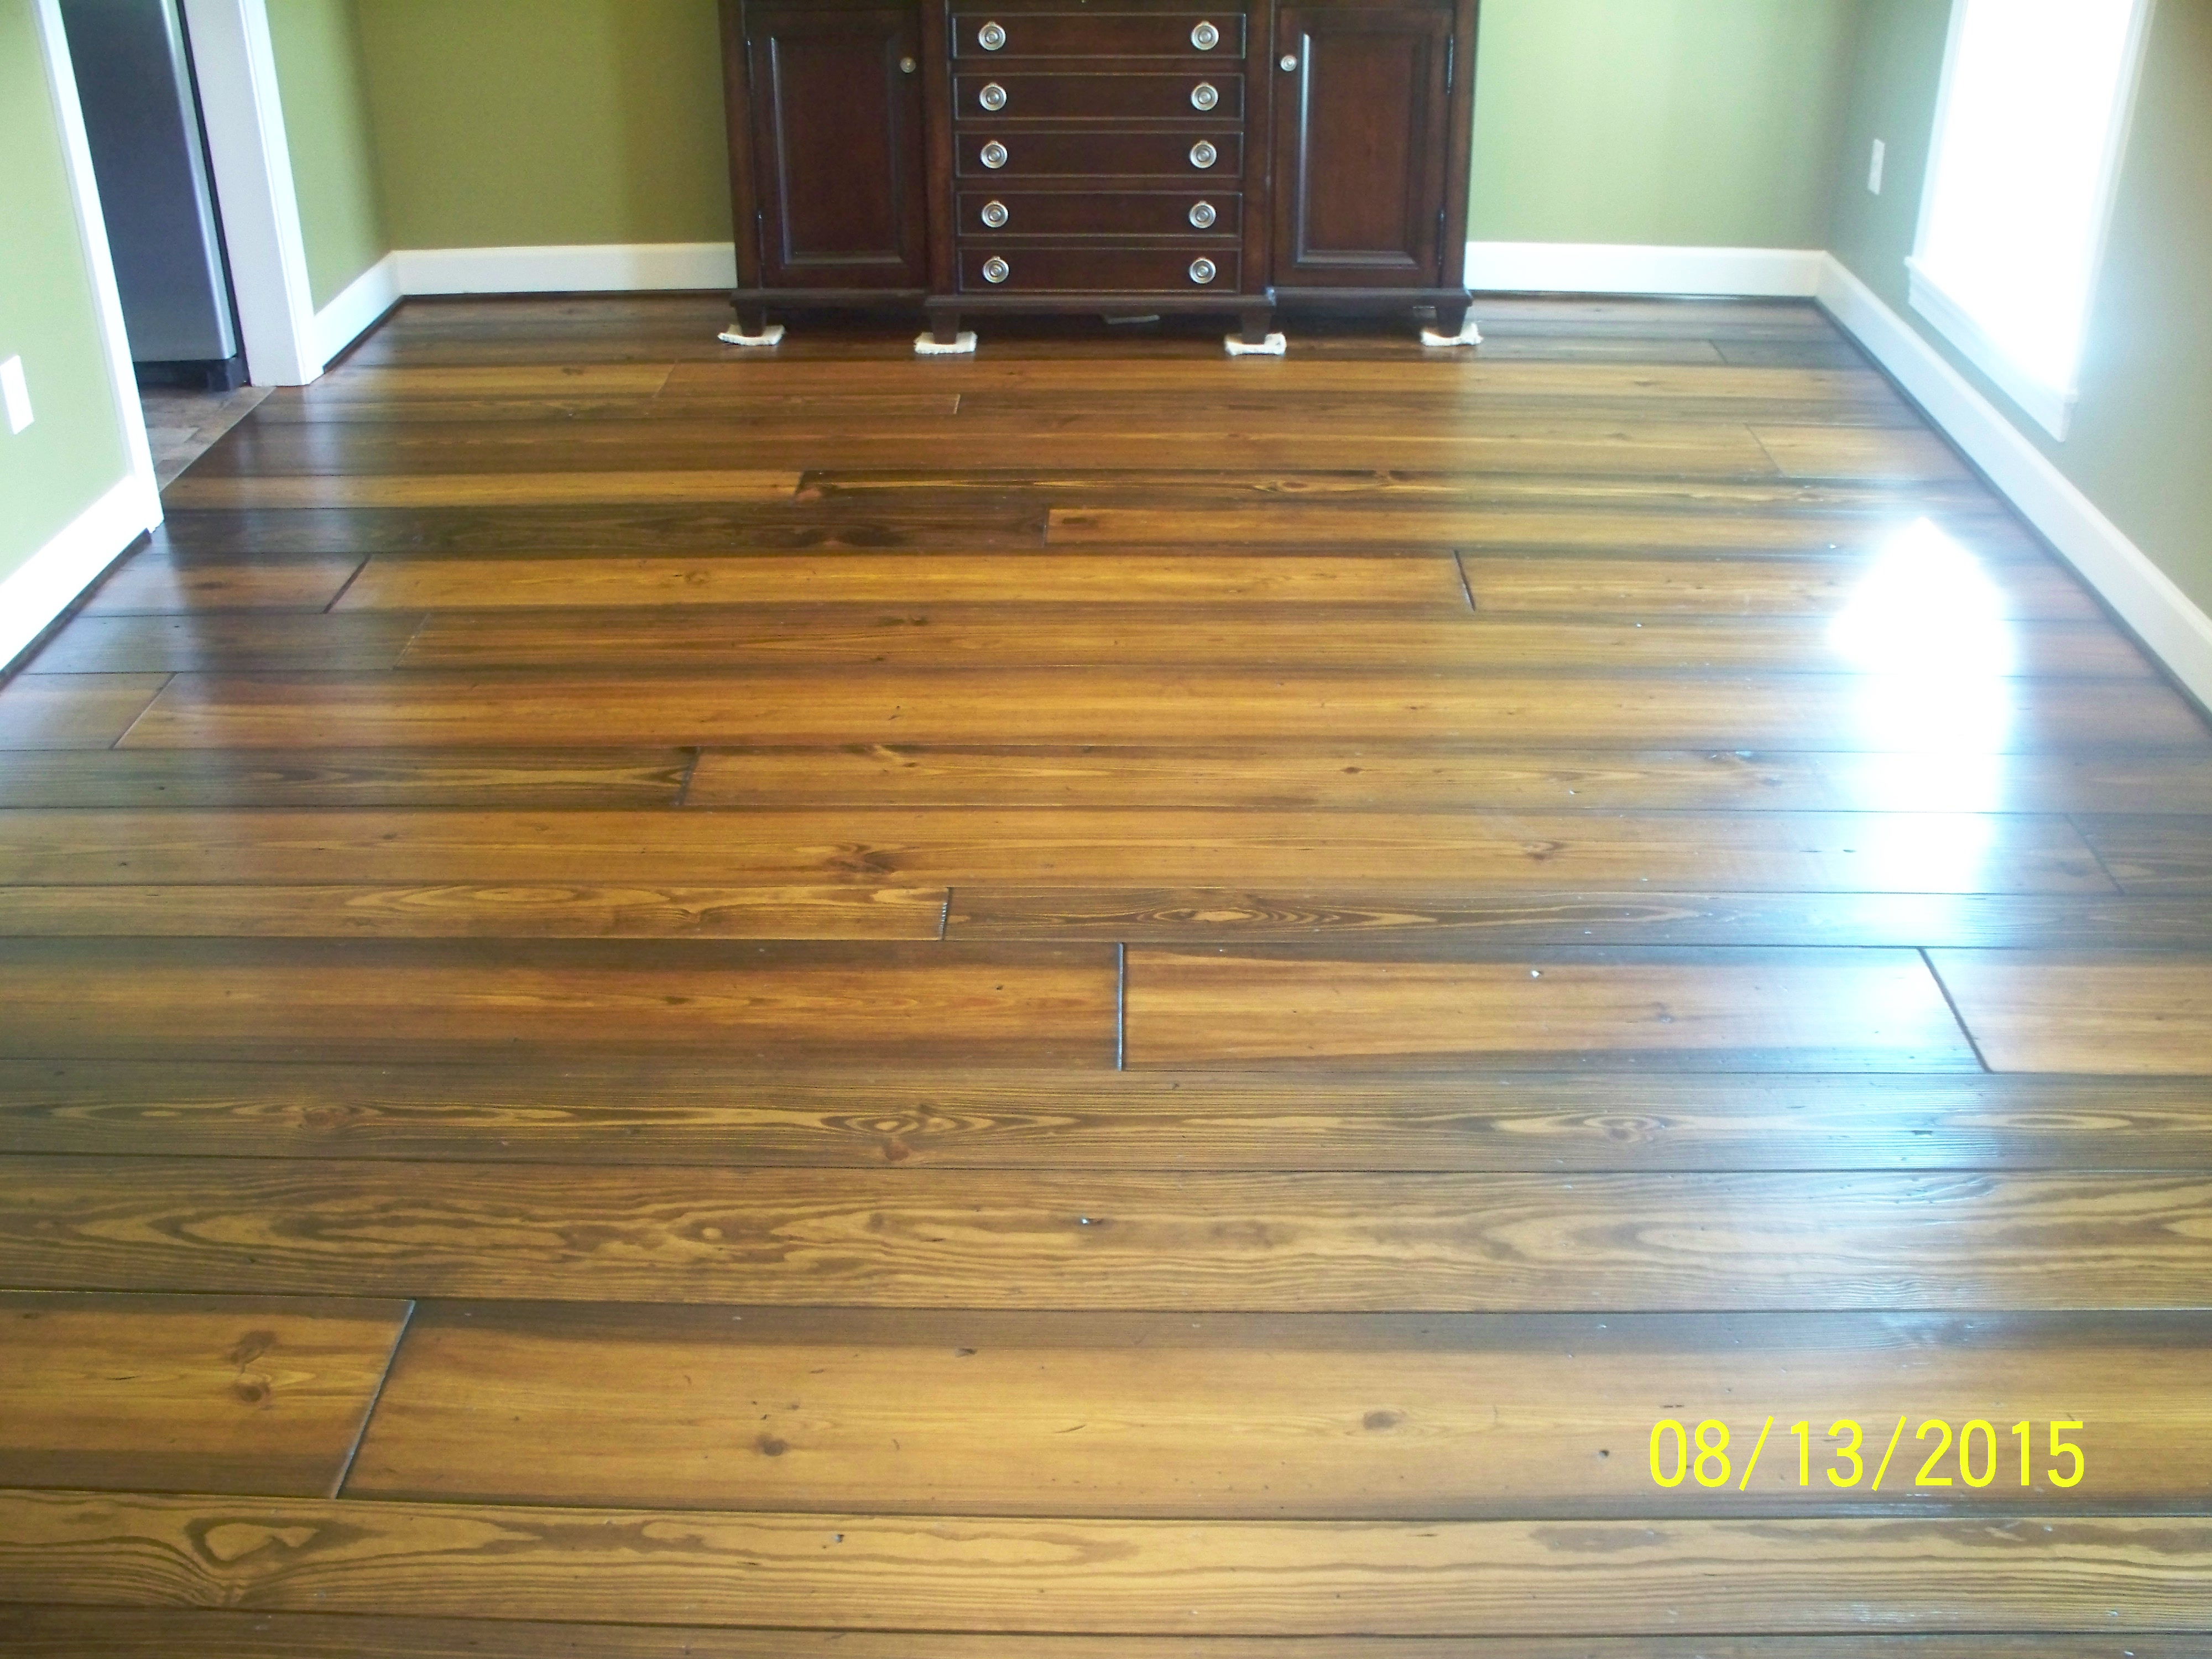 Old world series zeagler farms hand crafted flooring inc for Old world floors